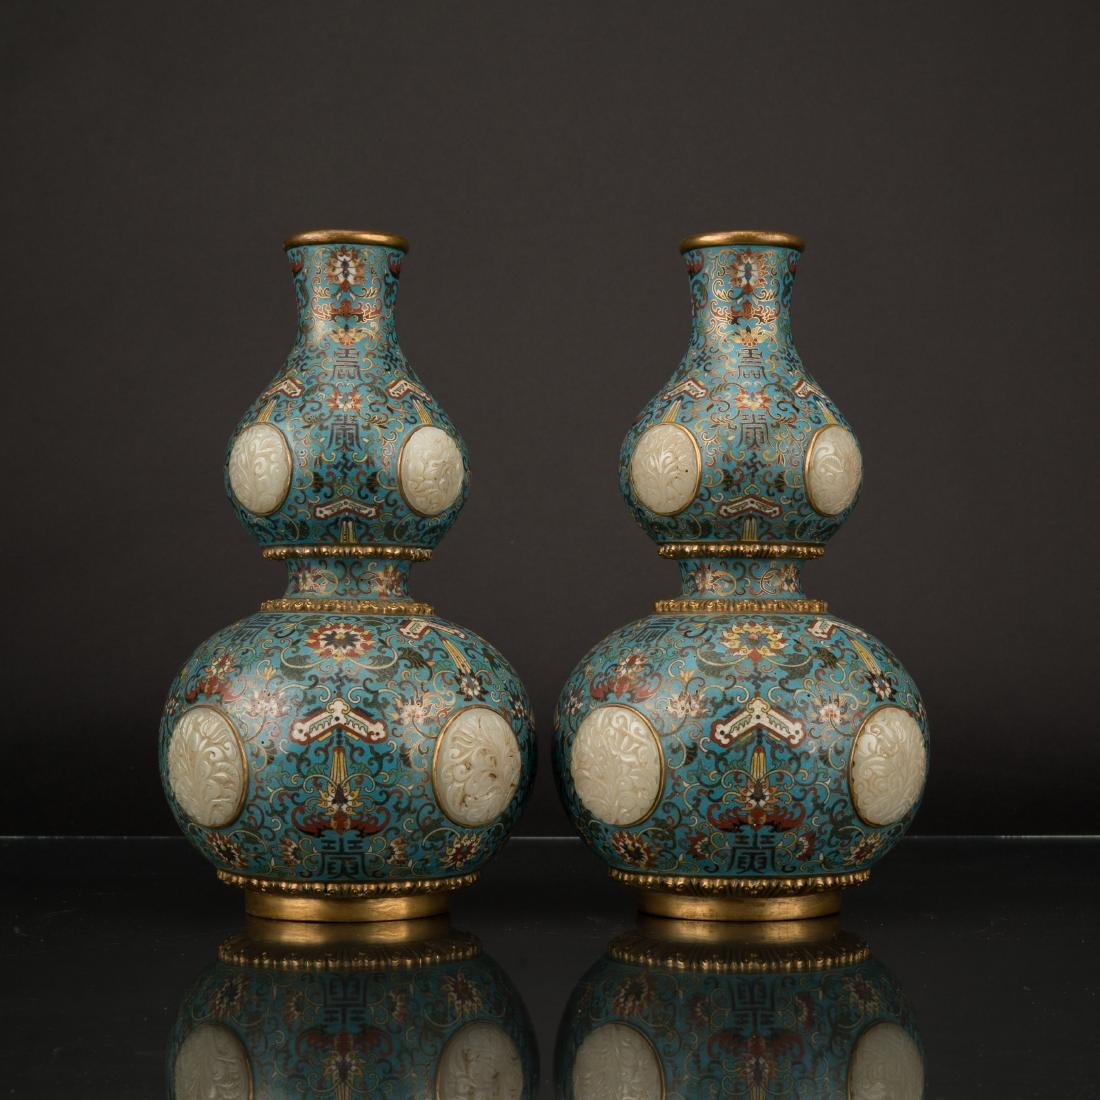 PAIR OF QING GILT BRONZE CLOISONNE JADE INLAID GOURD